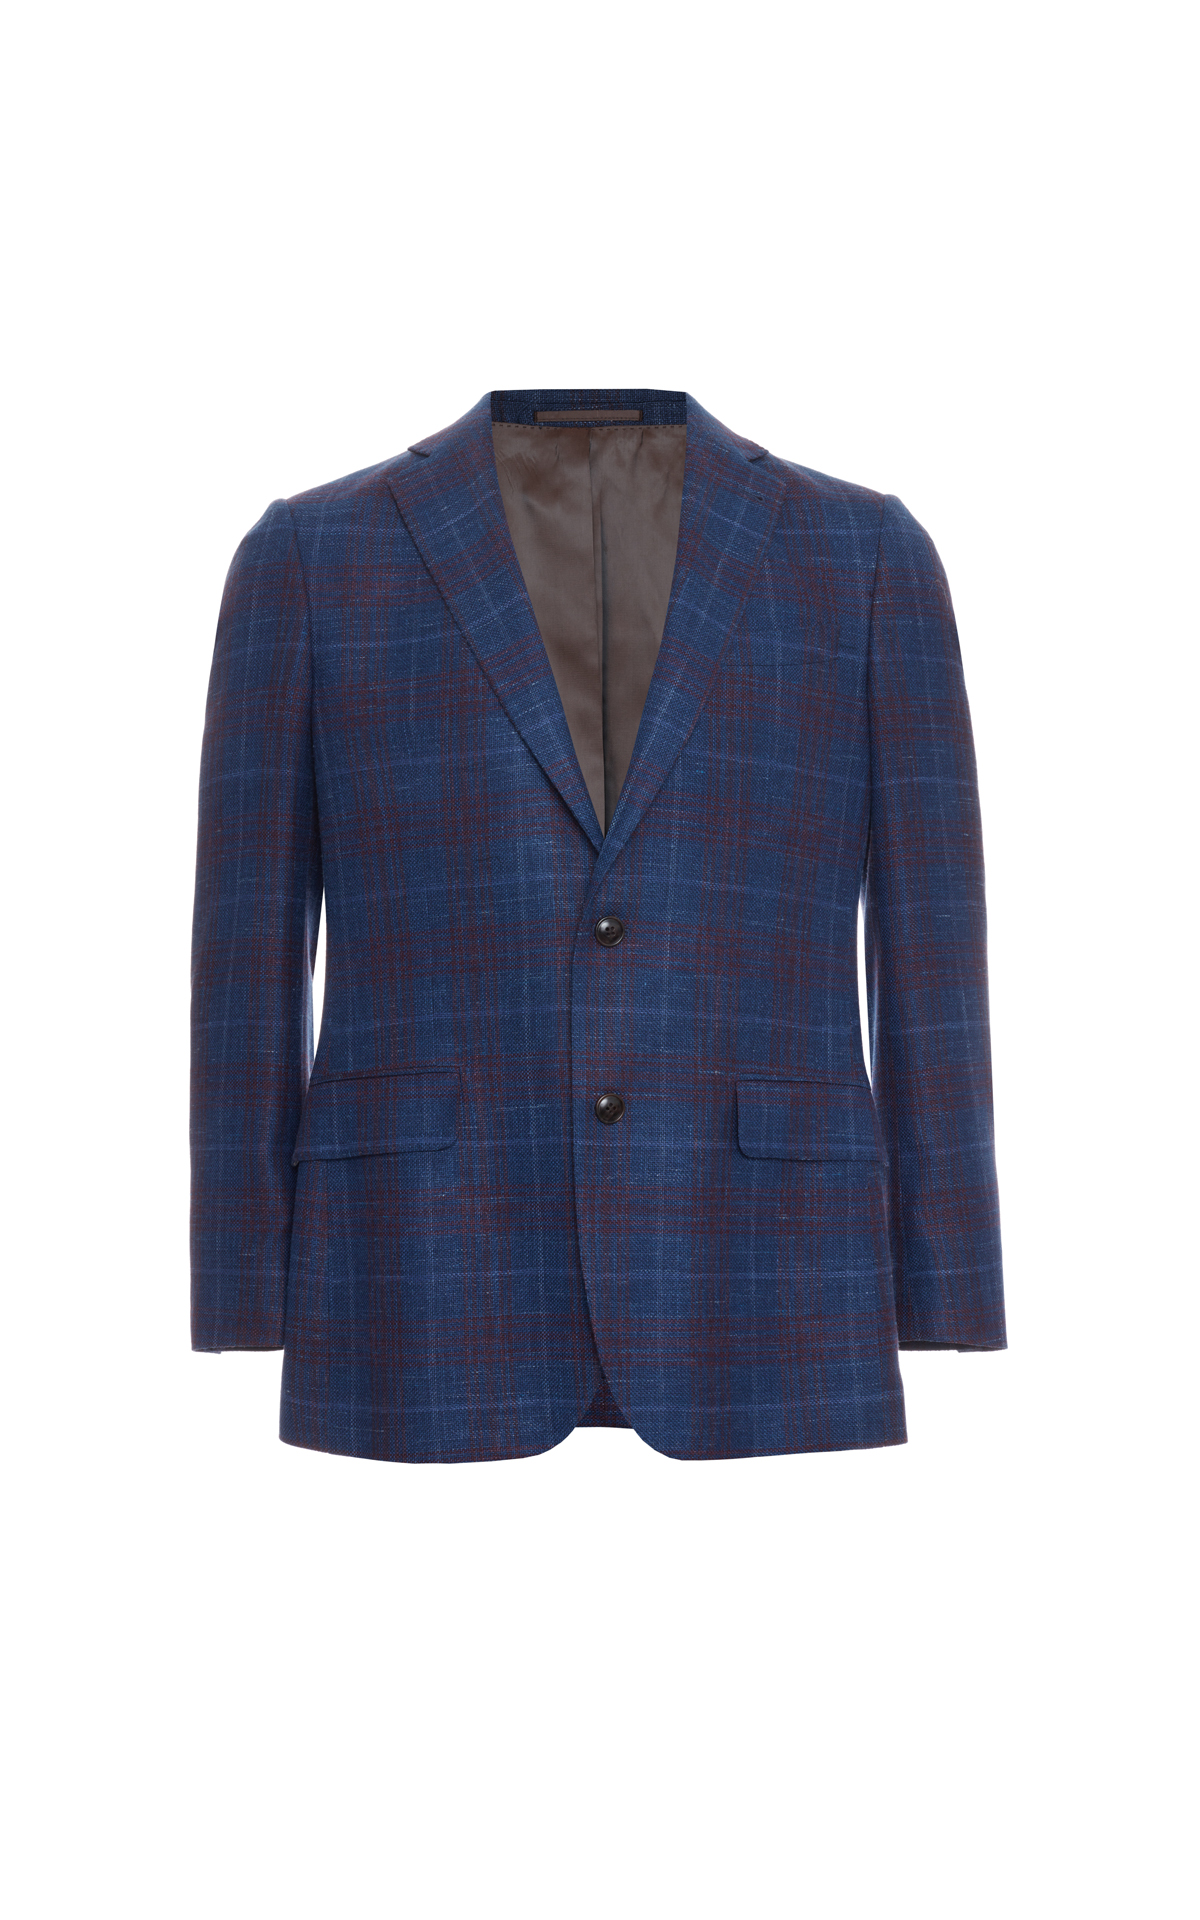 Savoy Taylors Guild Tailored fit navy jacket with red check from Bicester Village